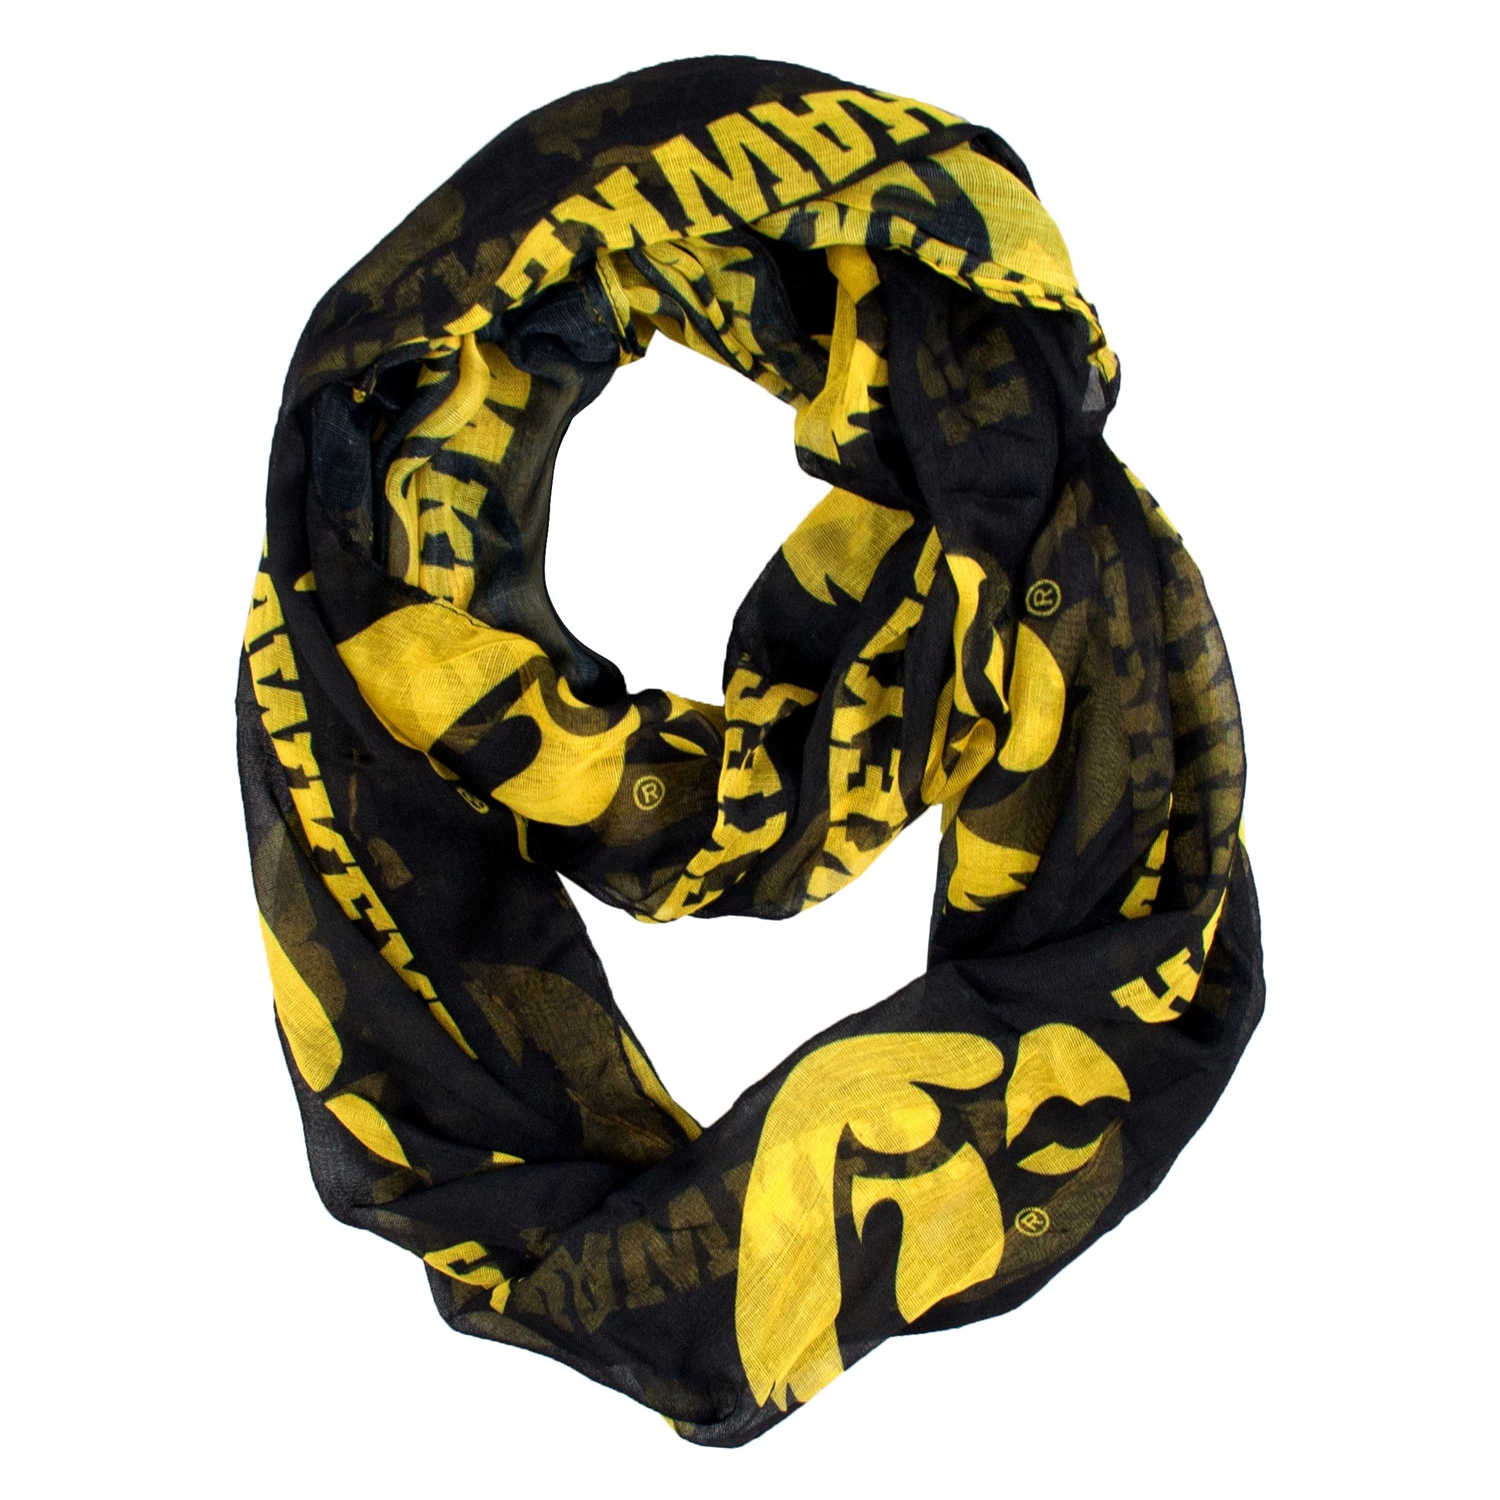 Ncaa College Iowa Iowa Hawkeyes Scarves - 100615-uiwa - Iowa; U Of Sheer Infinity Scarf 100615-UIWA